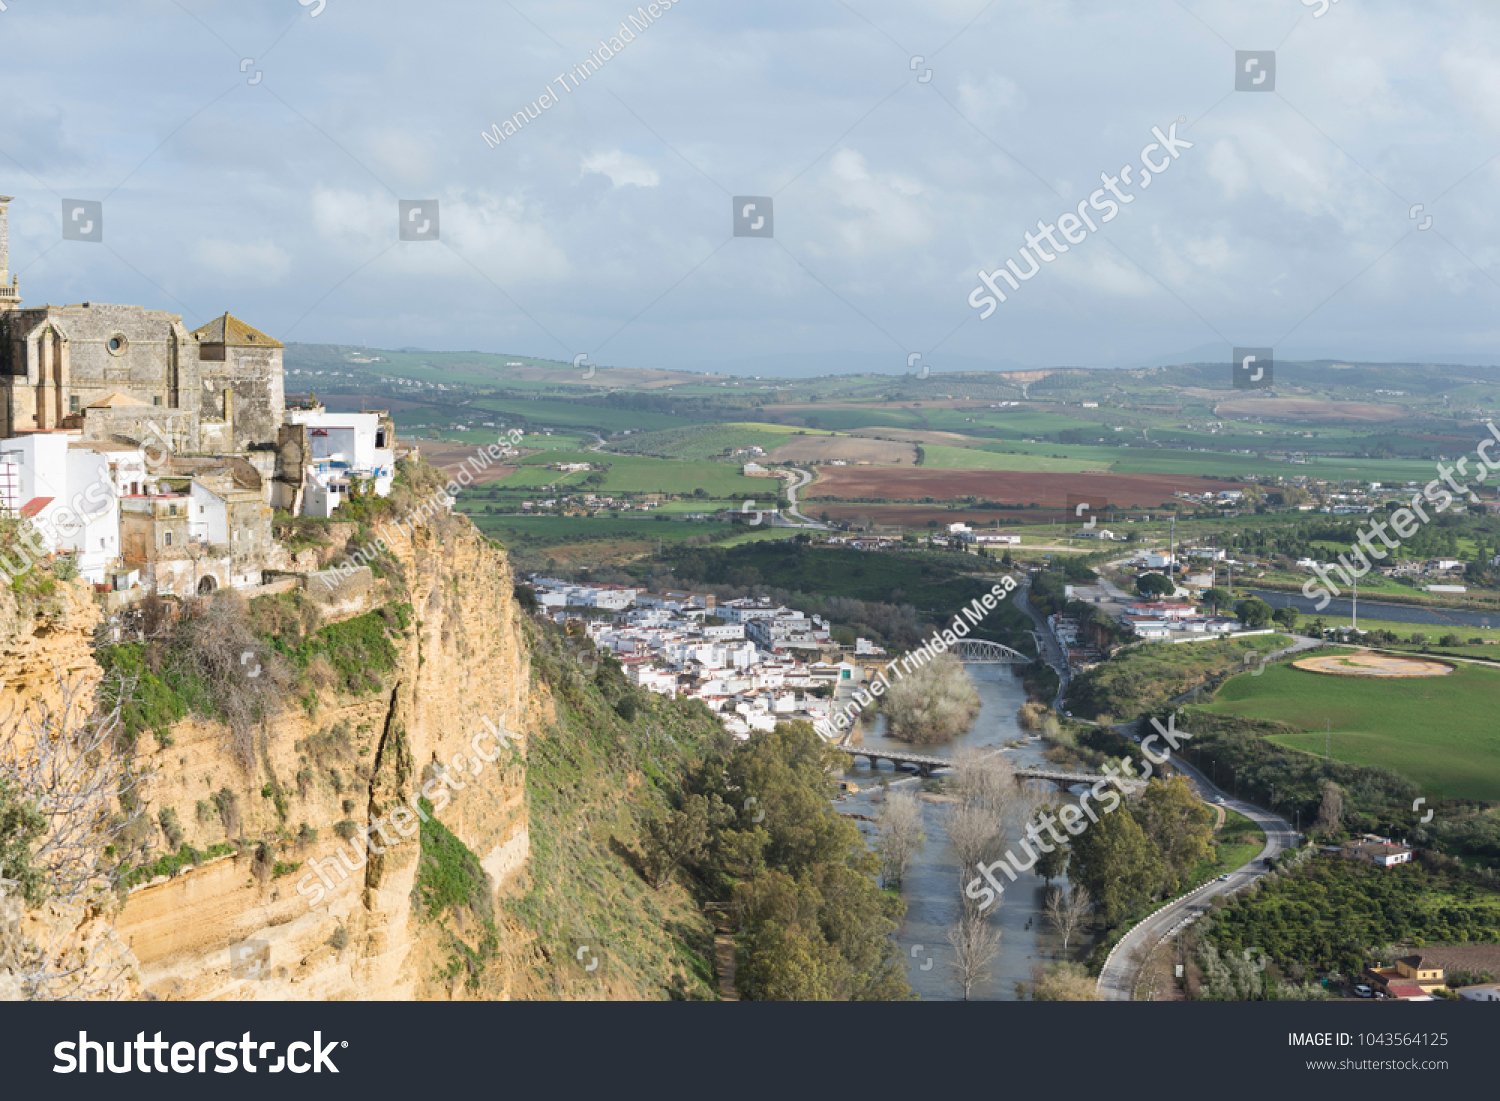 Fields of Arcos de la Frontera, image taken from the hill where the city is